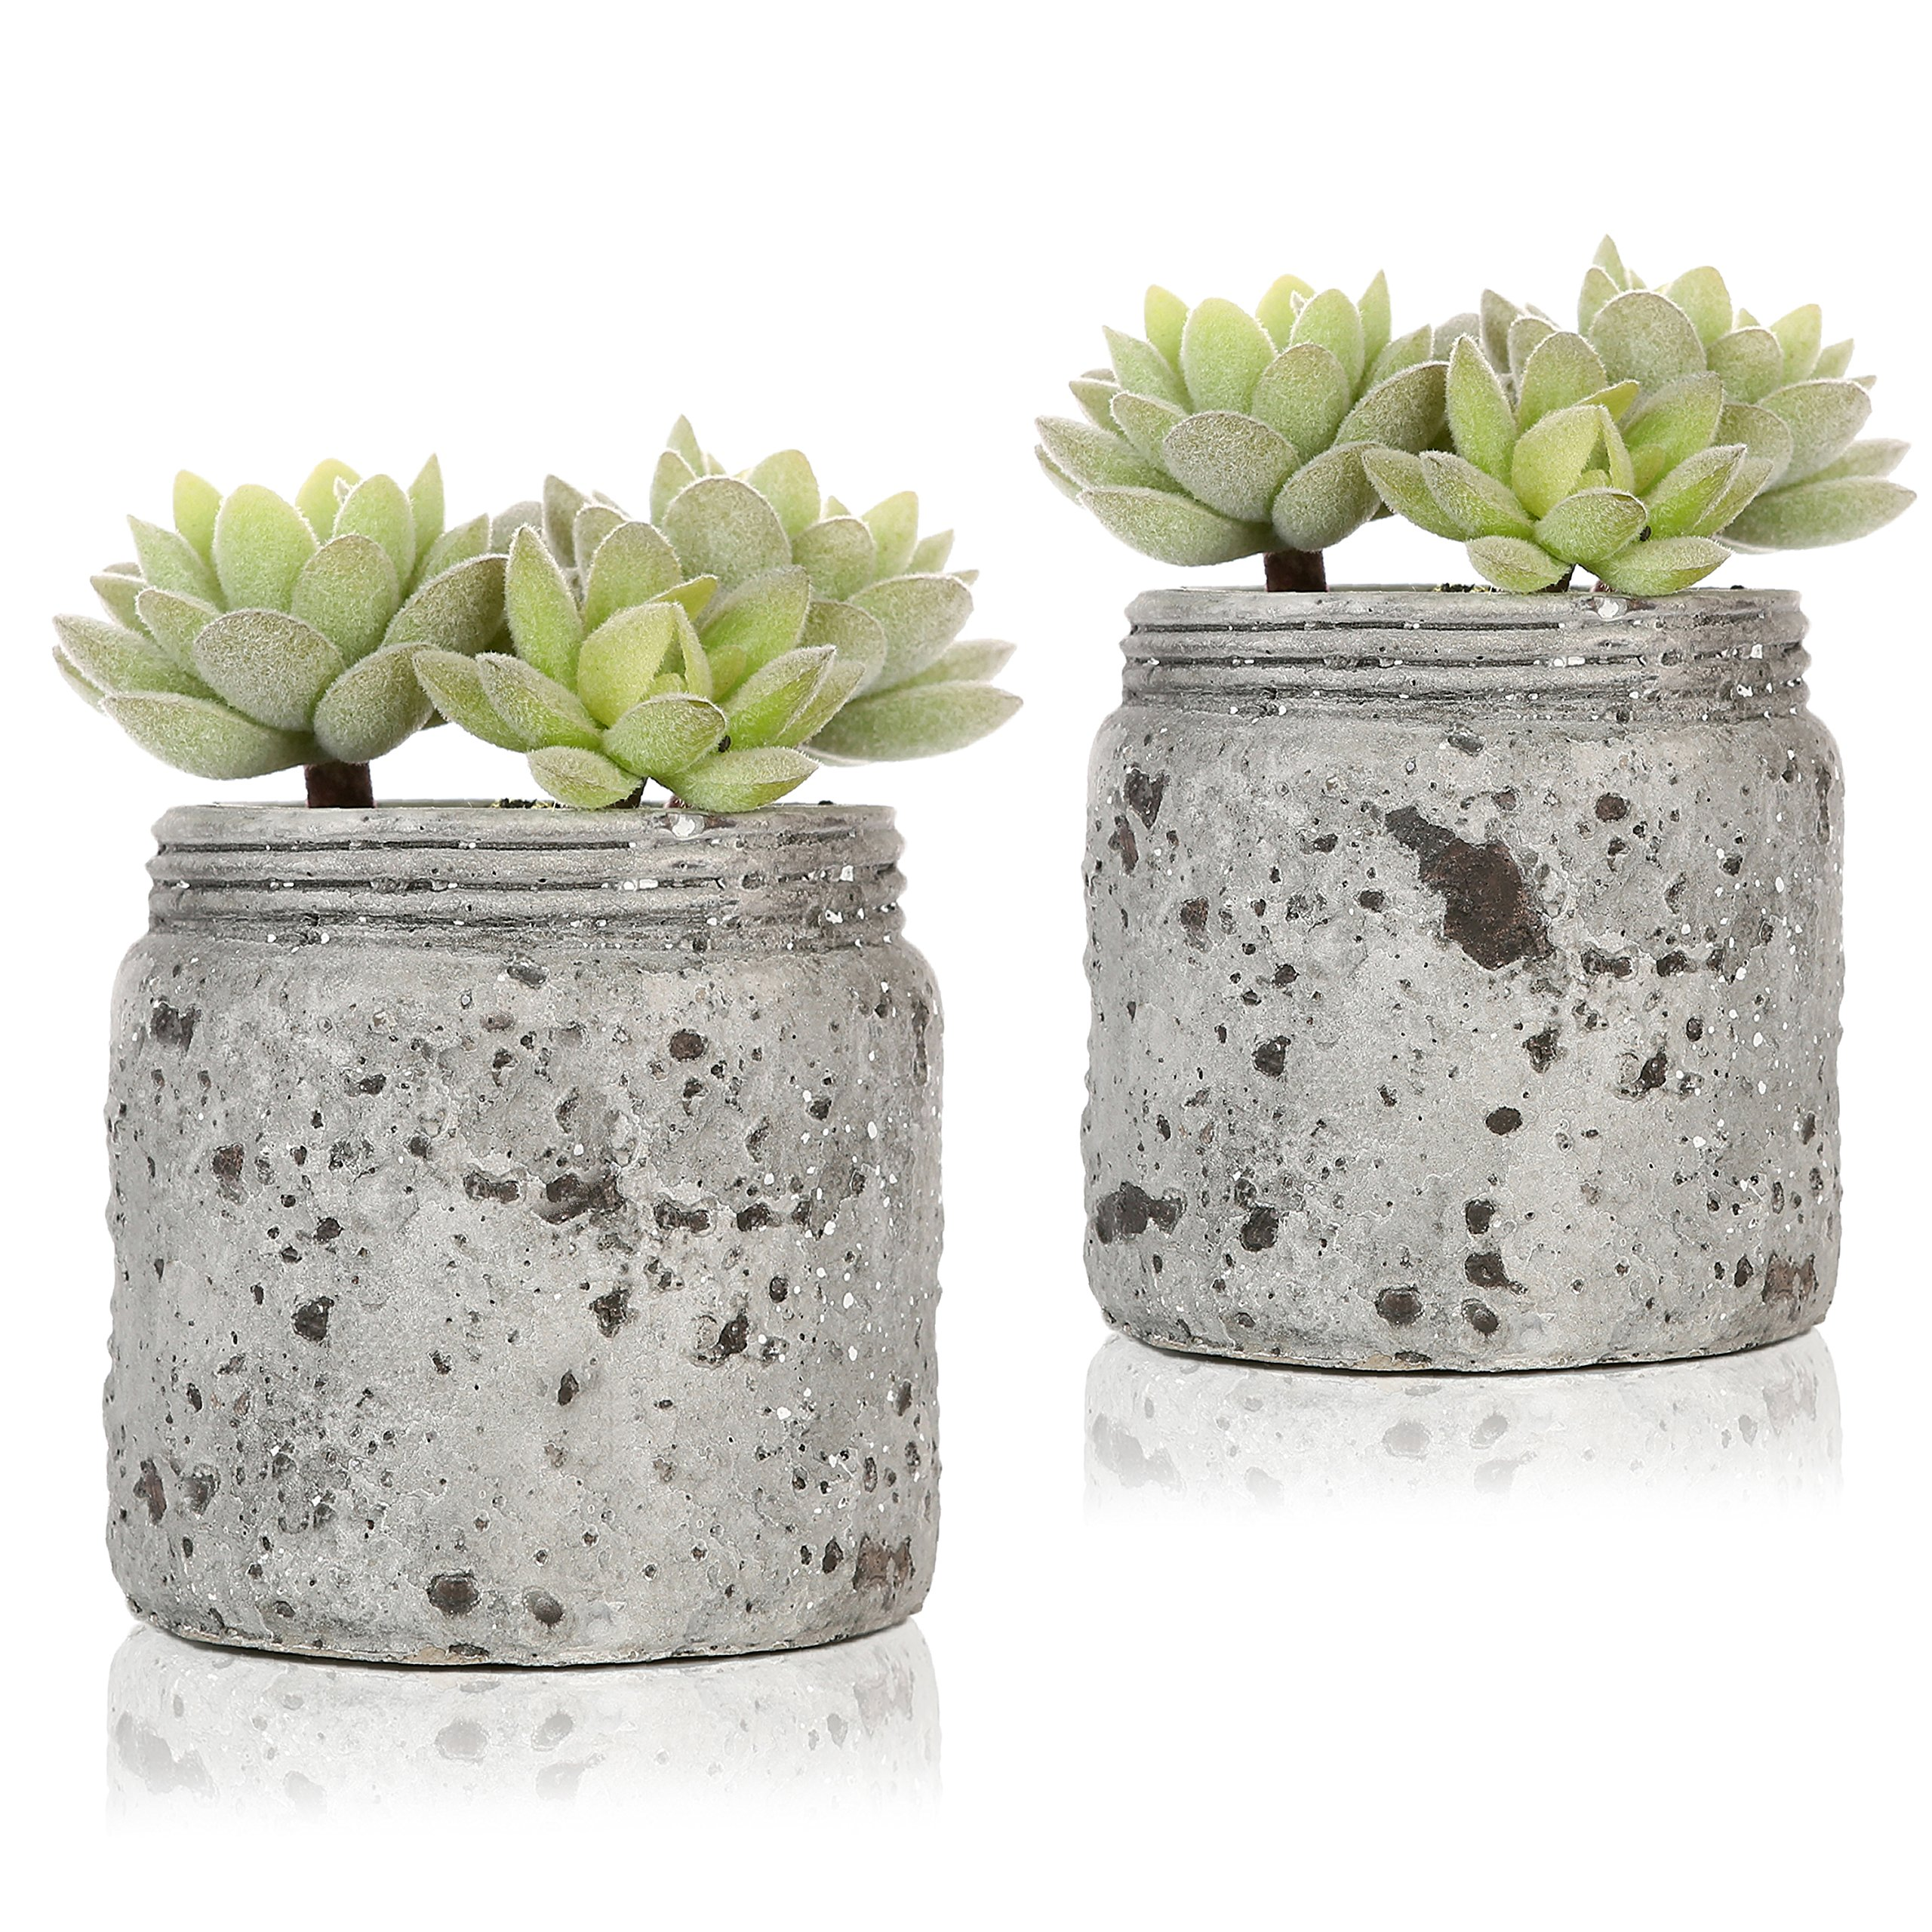 Mini Realistic Artificial Green Succulent Plants in Vintage Distressed Gray Ceramic Jar Pot, Set of 2 by MyGift